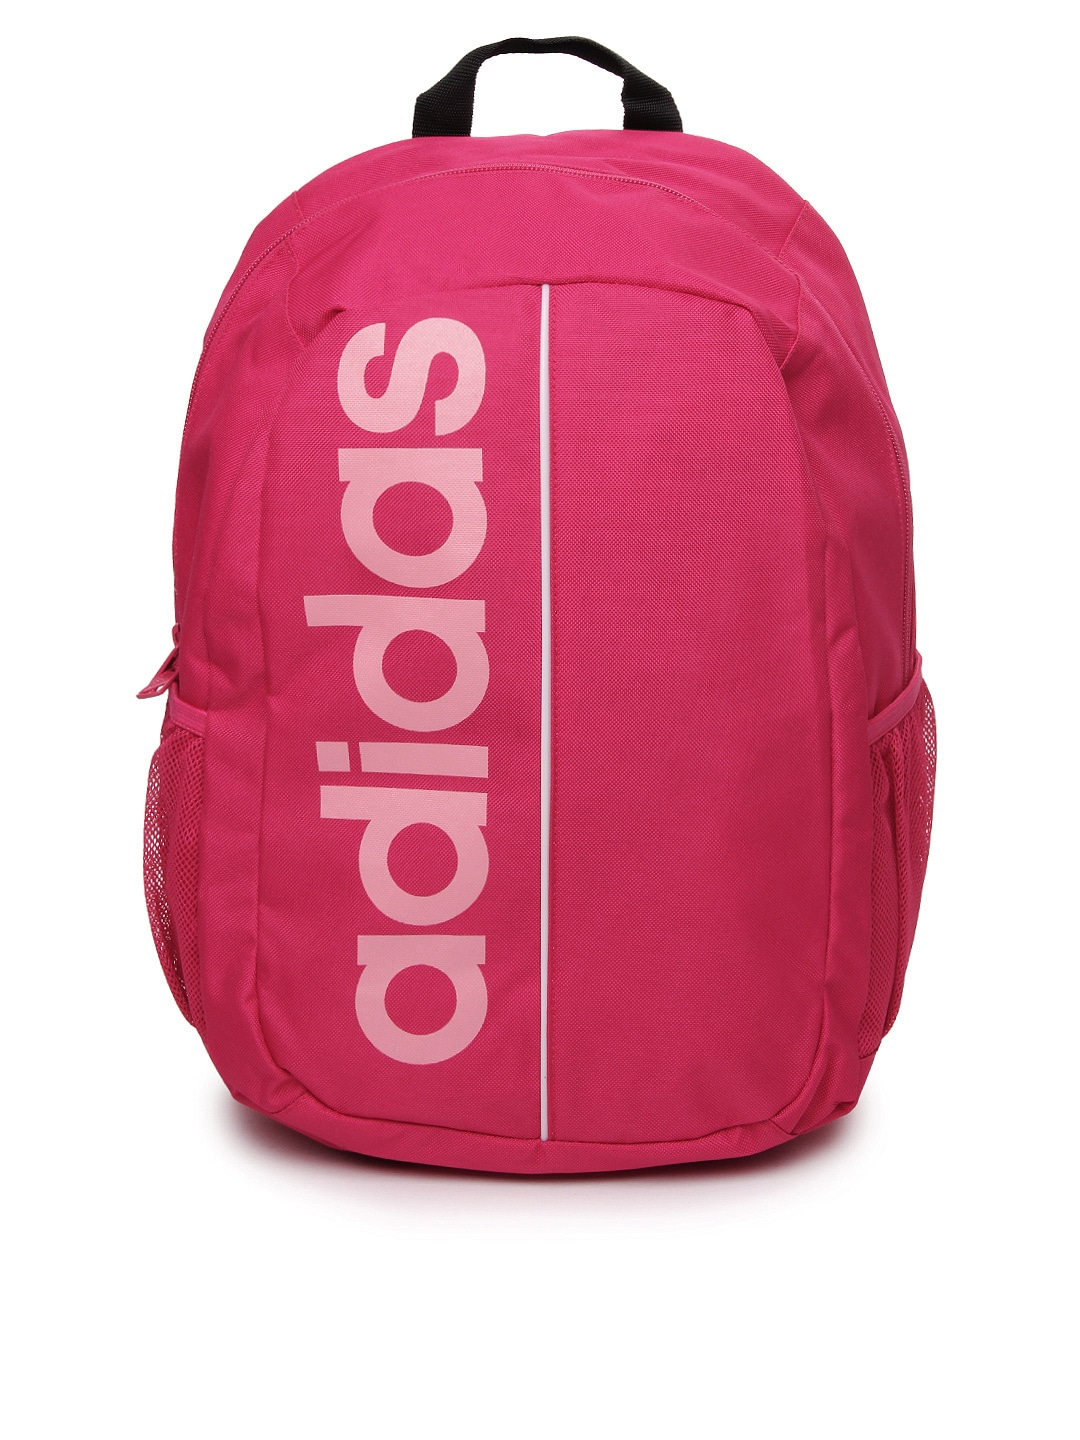 40132ffc52b Adidas f79042 Girls Pink Backpack - Best Price in India   priceiq.in